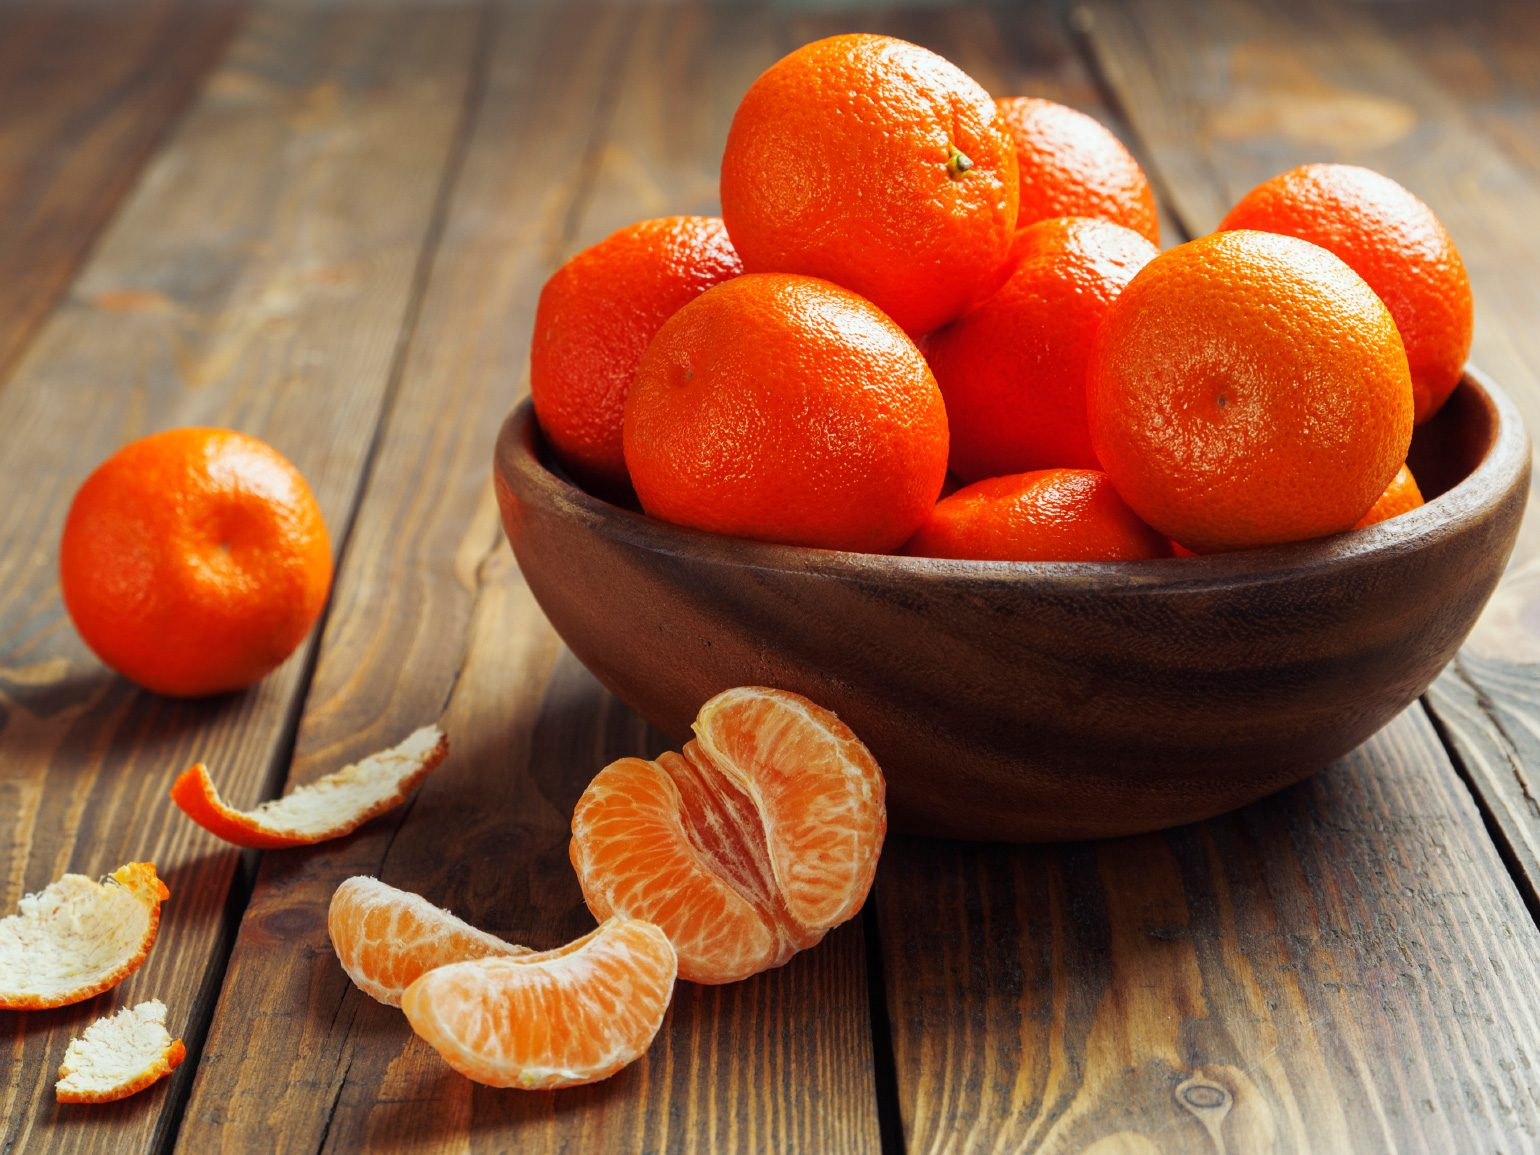 Kitchen Smell Like Last Night's Dinner? Simmer Orange Peels